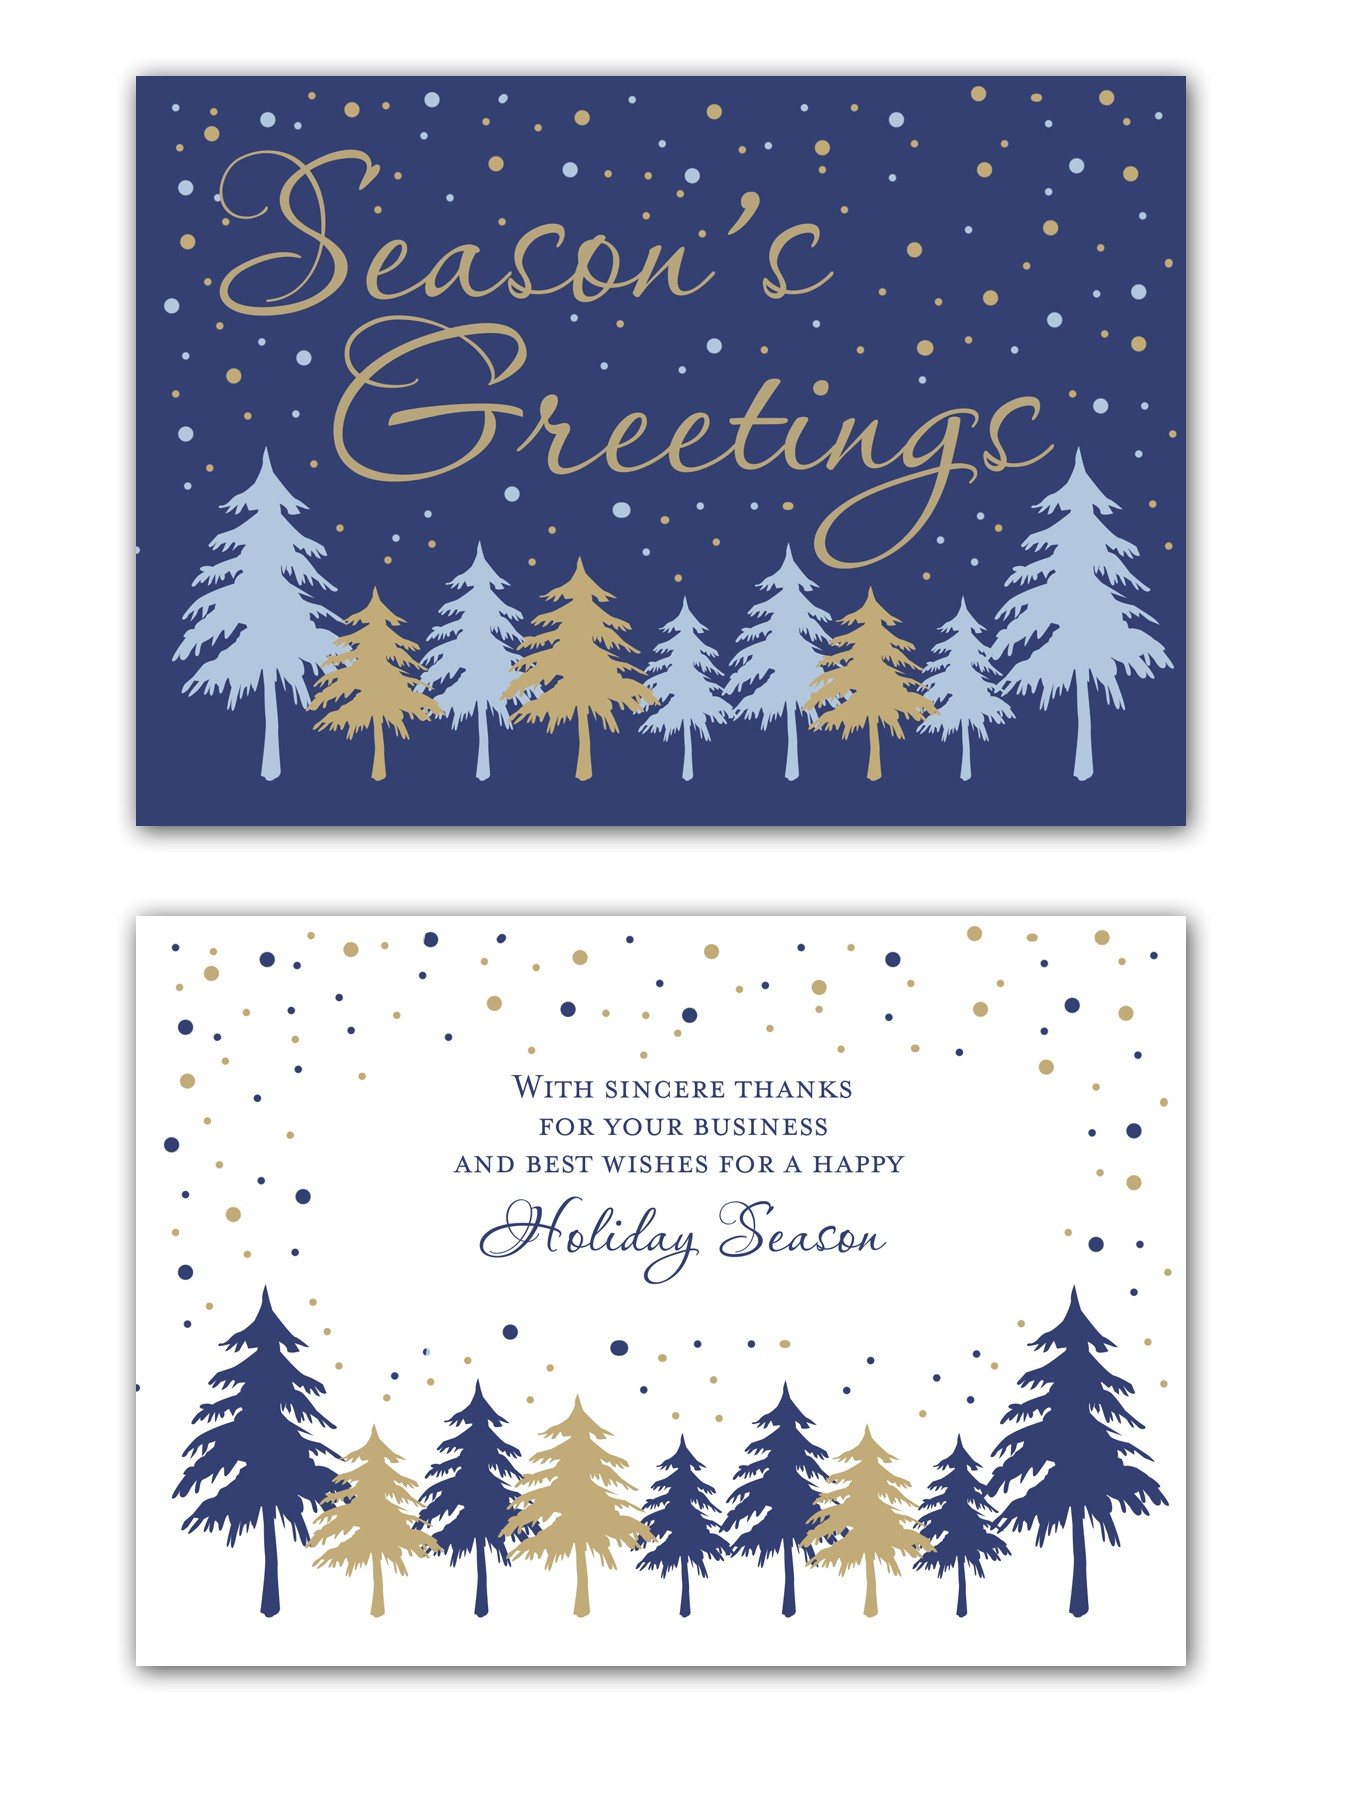 Holiday greeting cards -  Will award upto 15 winners!